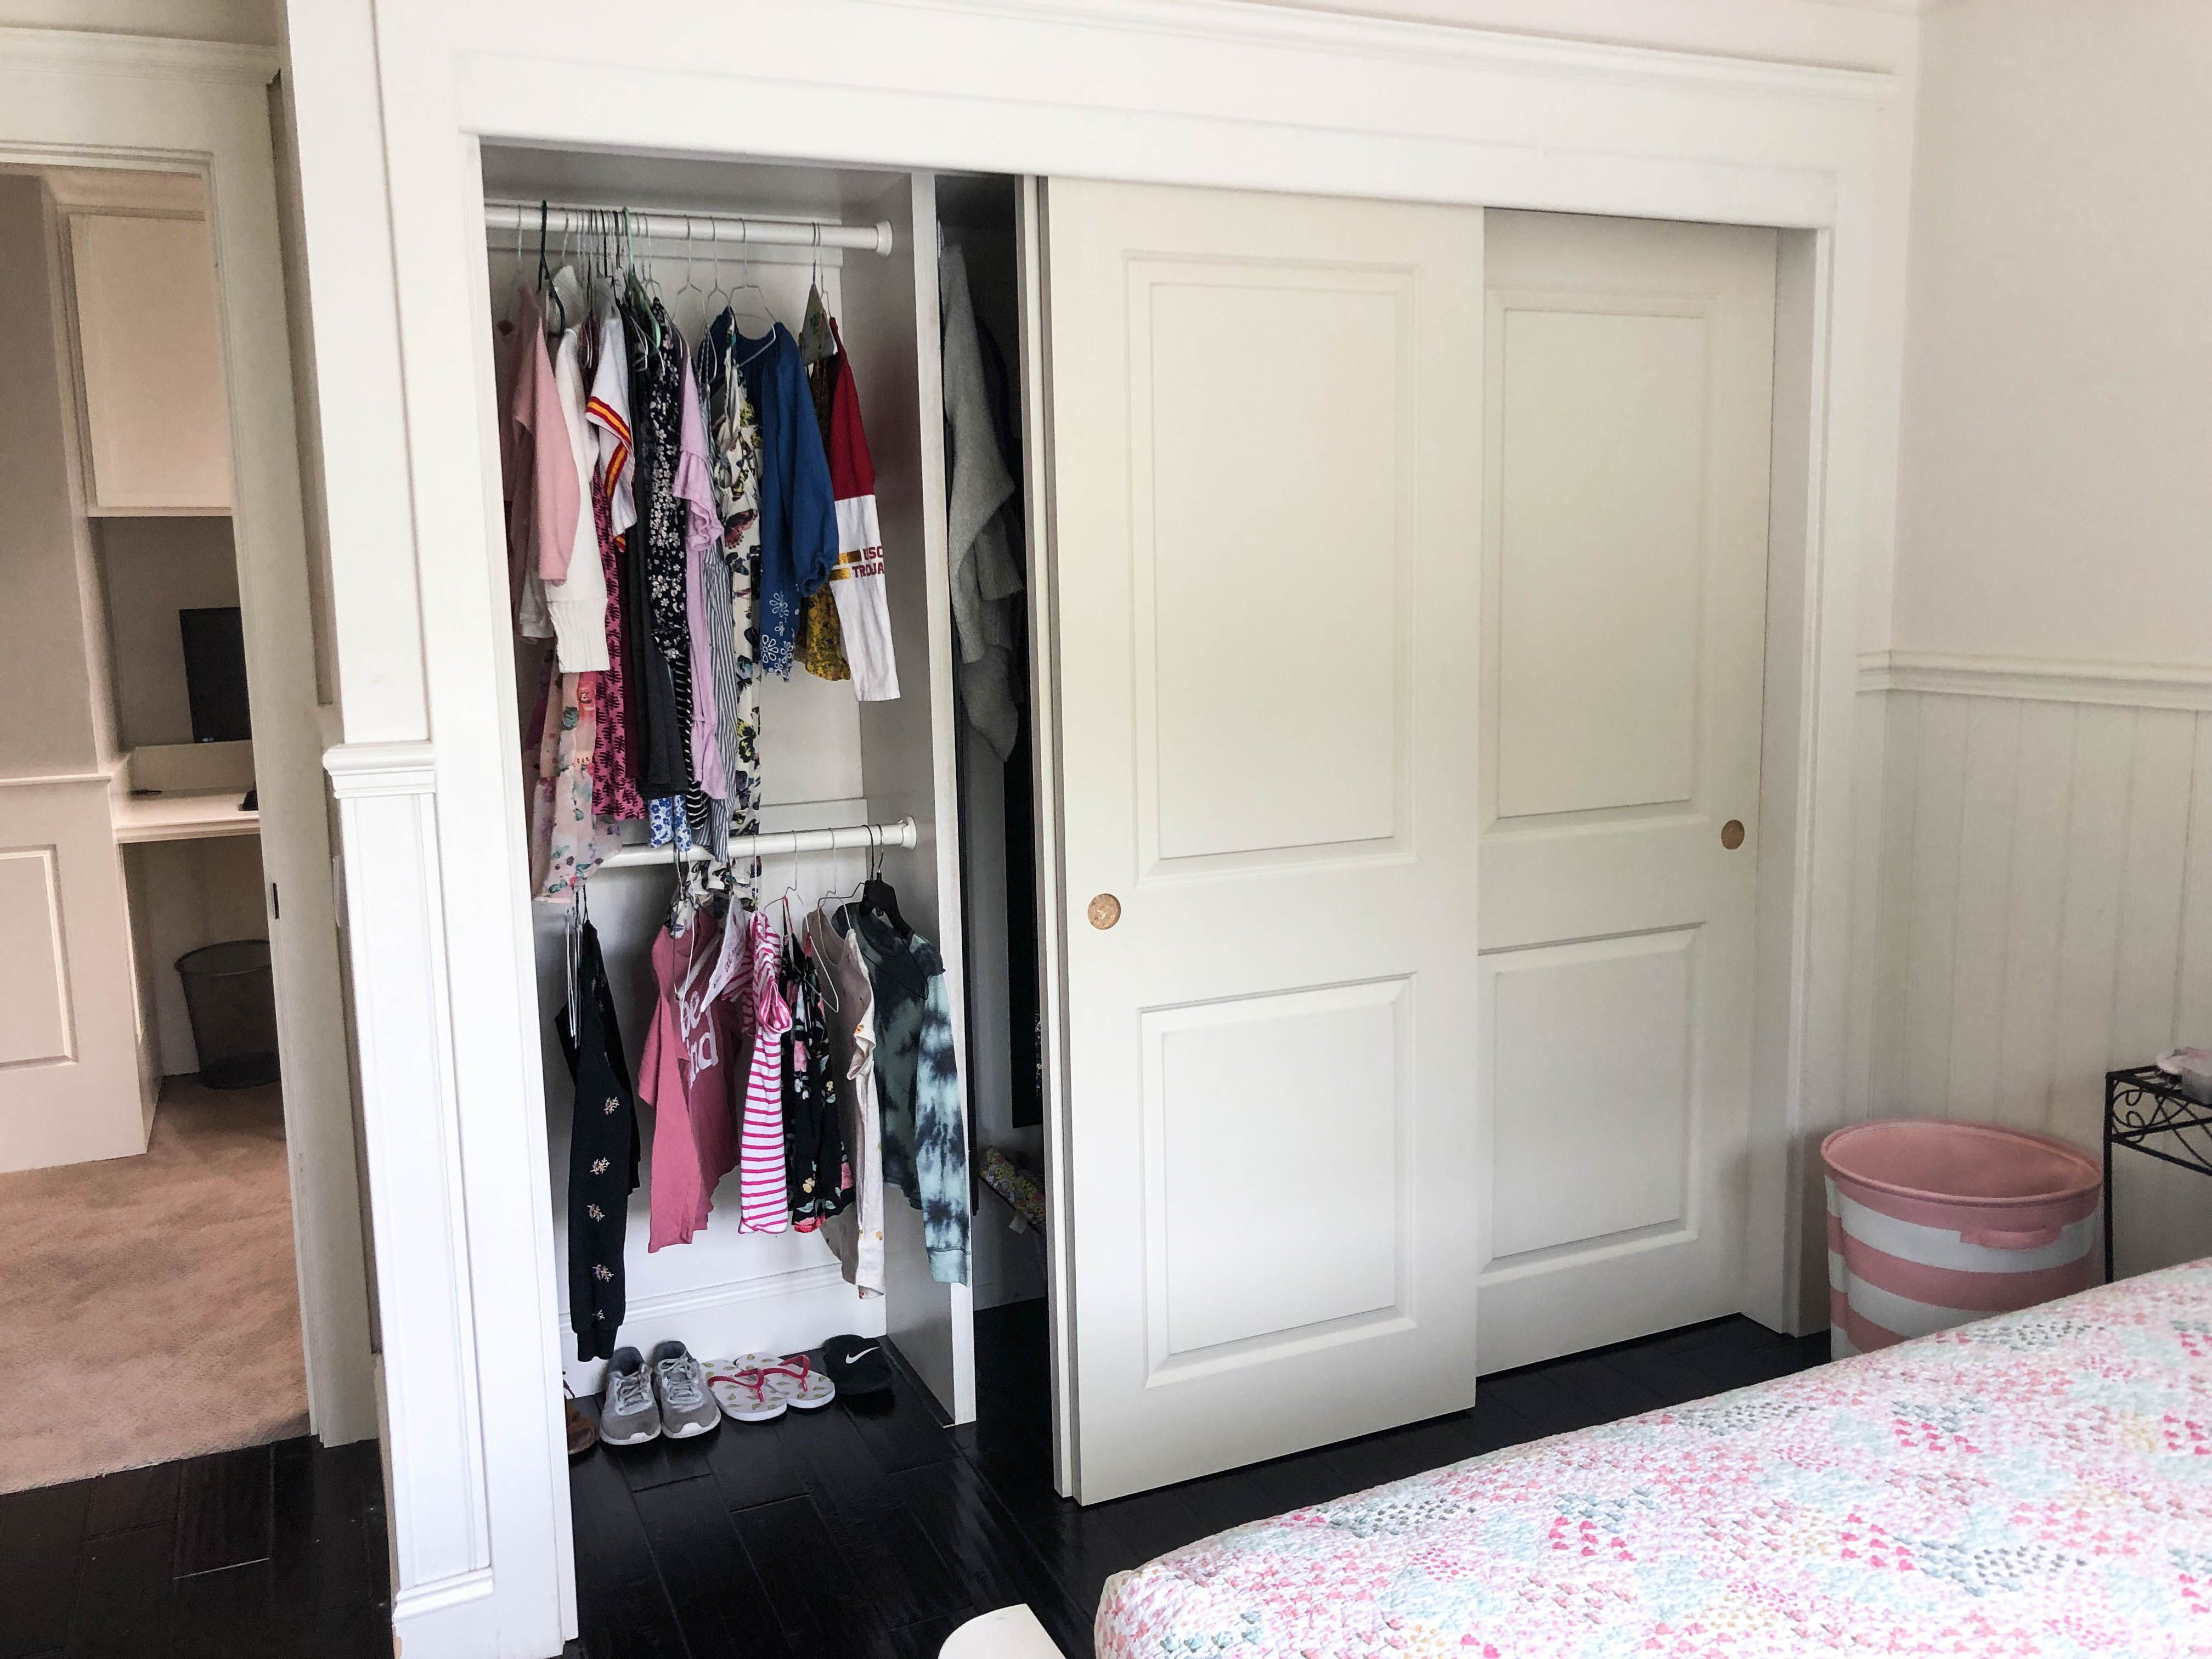 Would You Look At These 3 Track 3 Panel Molded Closet Doors With Cambridge Designs We Love How They Turned Out Closet Doors Perfect Closet Panel Moulding